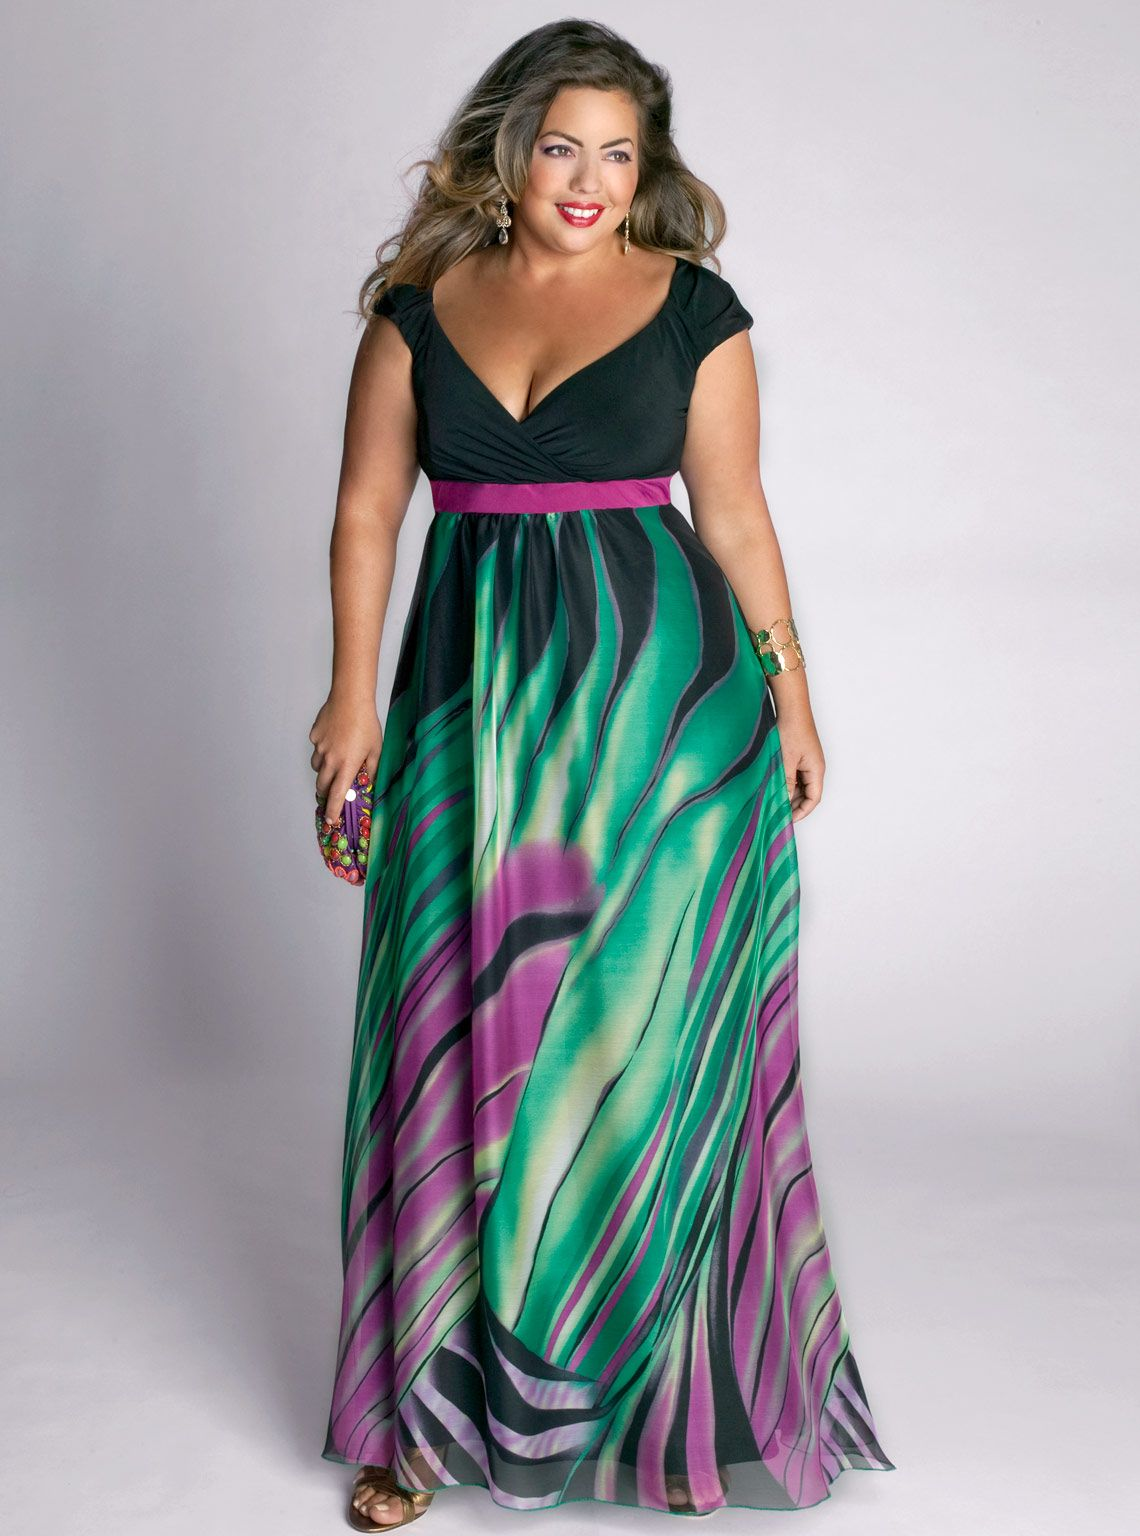 25 Plus Size Womens Clothing For Summer | Maxi dresses, Floor ...